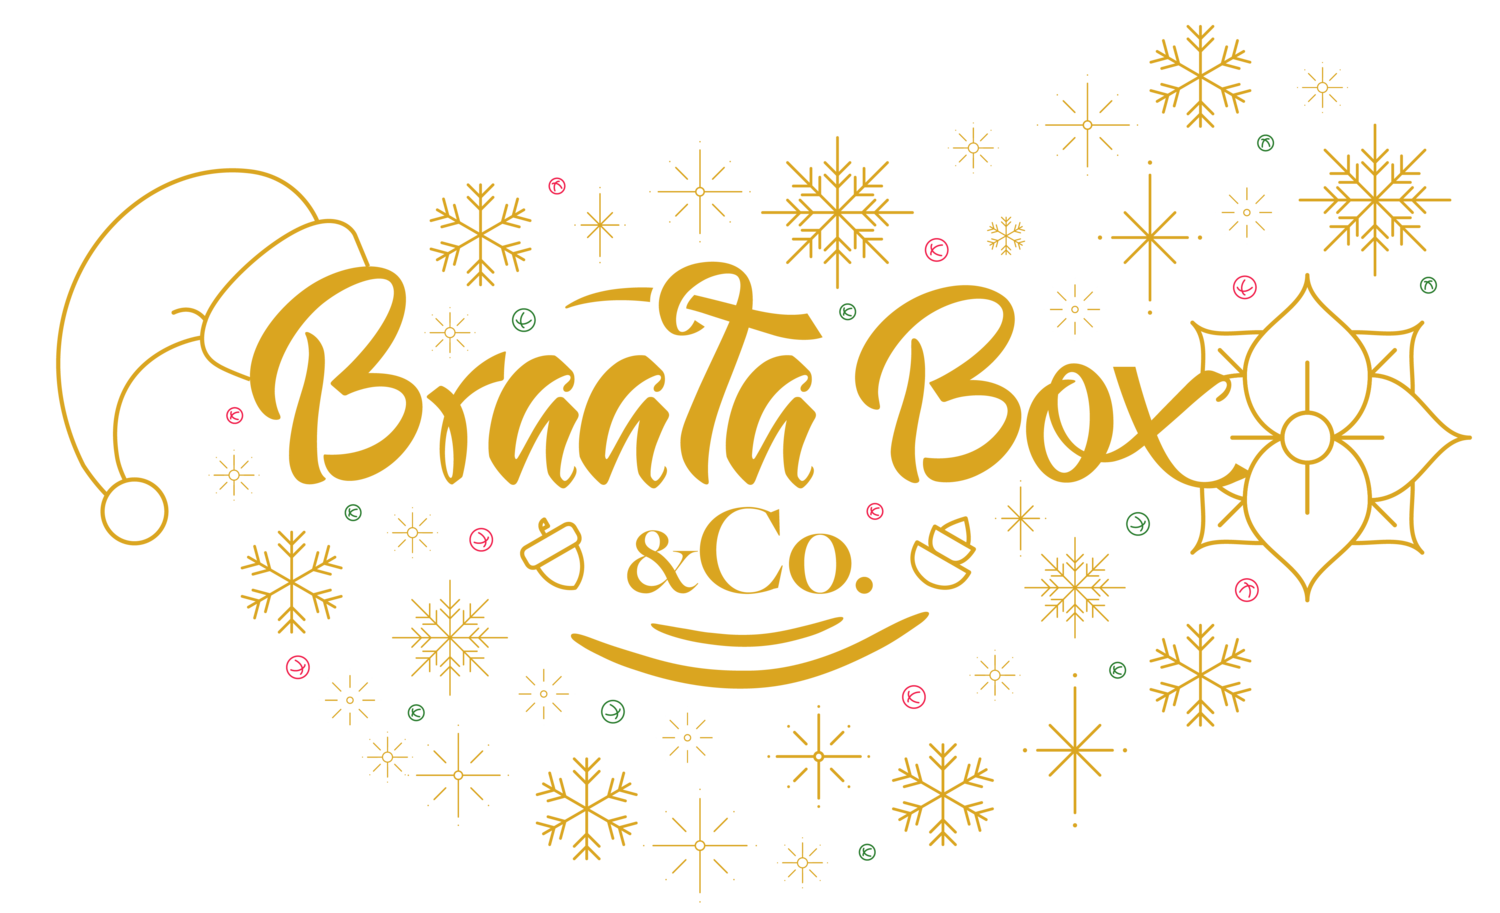 Braata Box & Co.